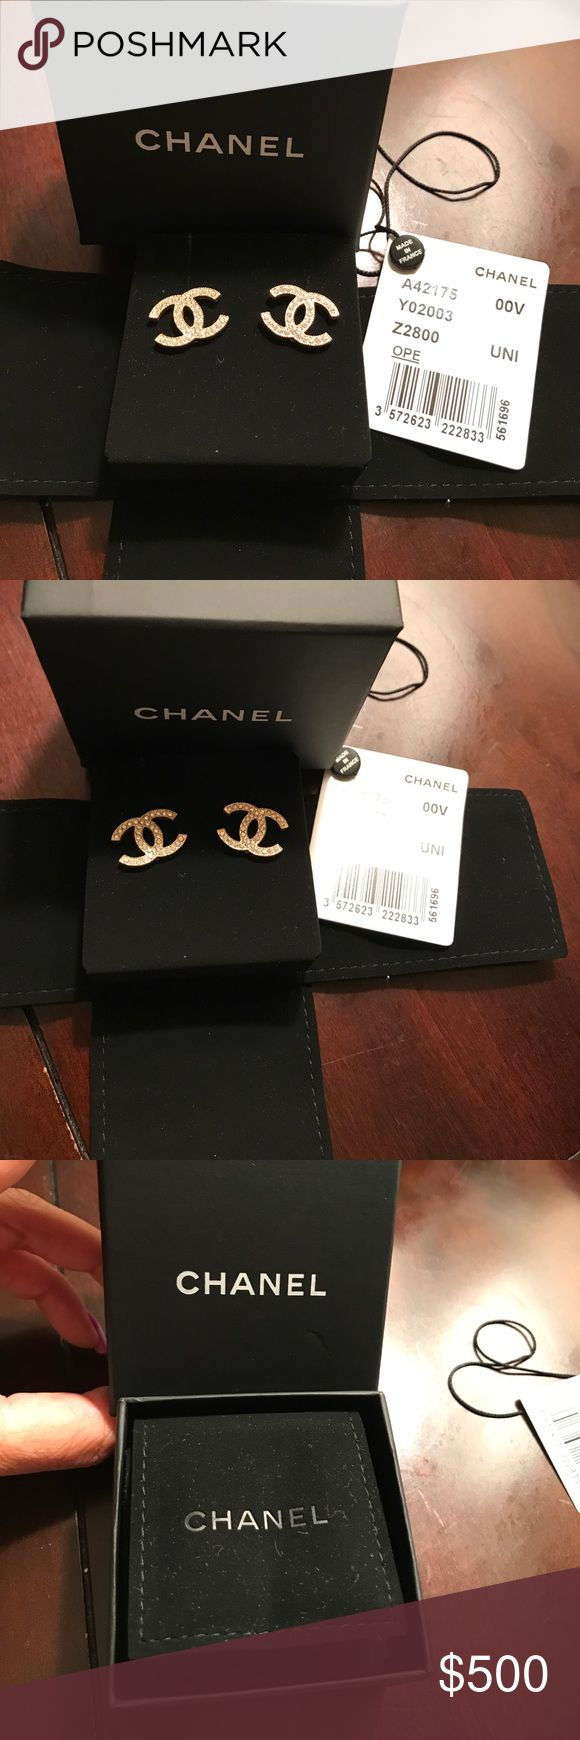 BNWT Authentic Chanel Gold Crystal Earrings Timeless Authentic Chanel logo earrings. New in box with tags. Beautiful classic gold/crystal earrings! These are fashionable now and forever. Hard to find and for a good reason..... Bought last month at Chanel South Coast Plaza. CHANEL Jewelry Earrings